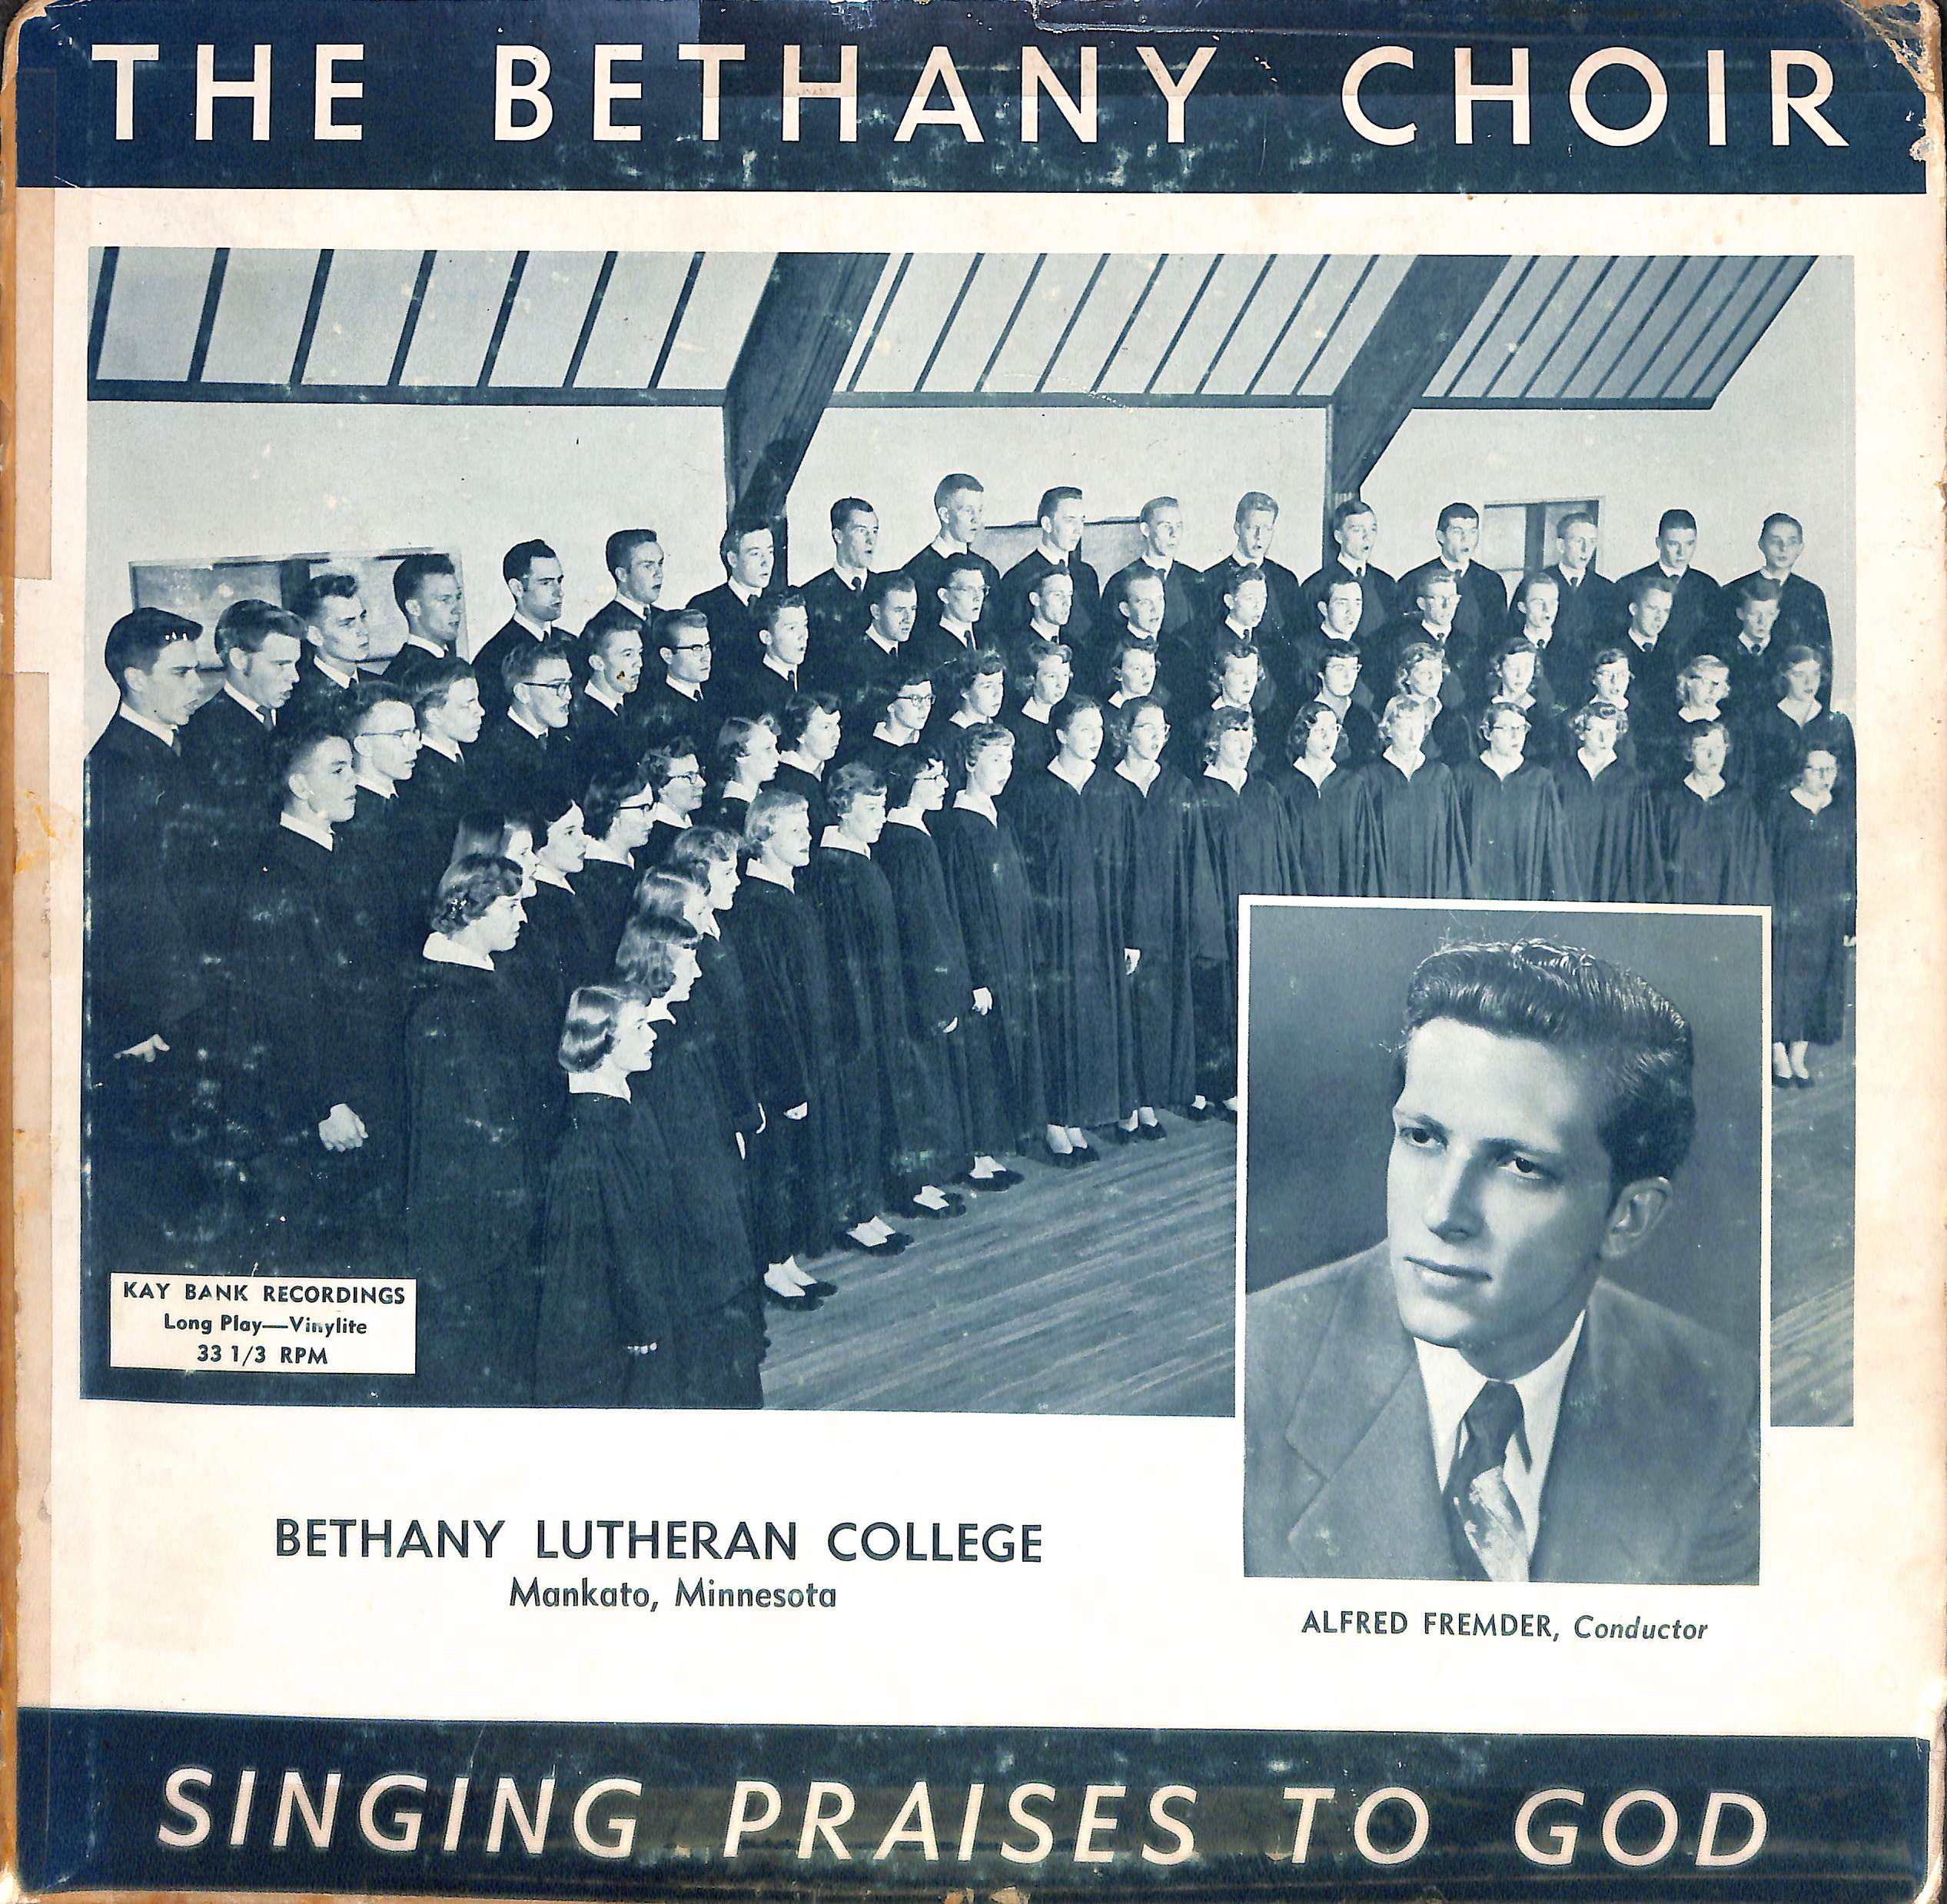 The Bethany Choir 1950: Singing Praises to God